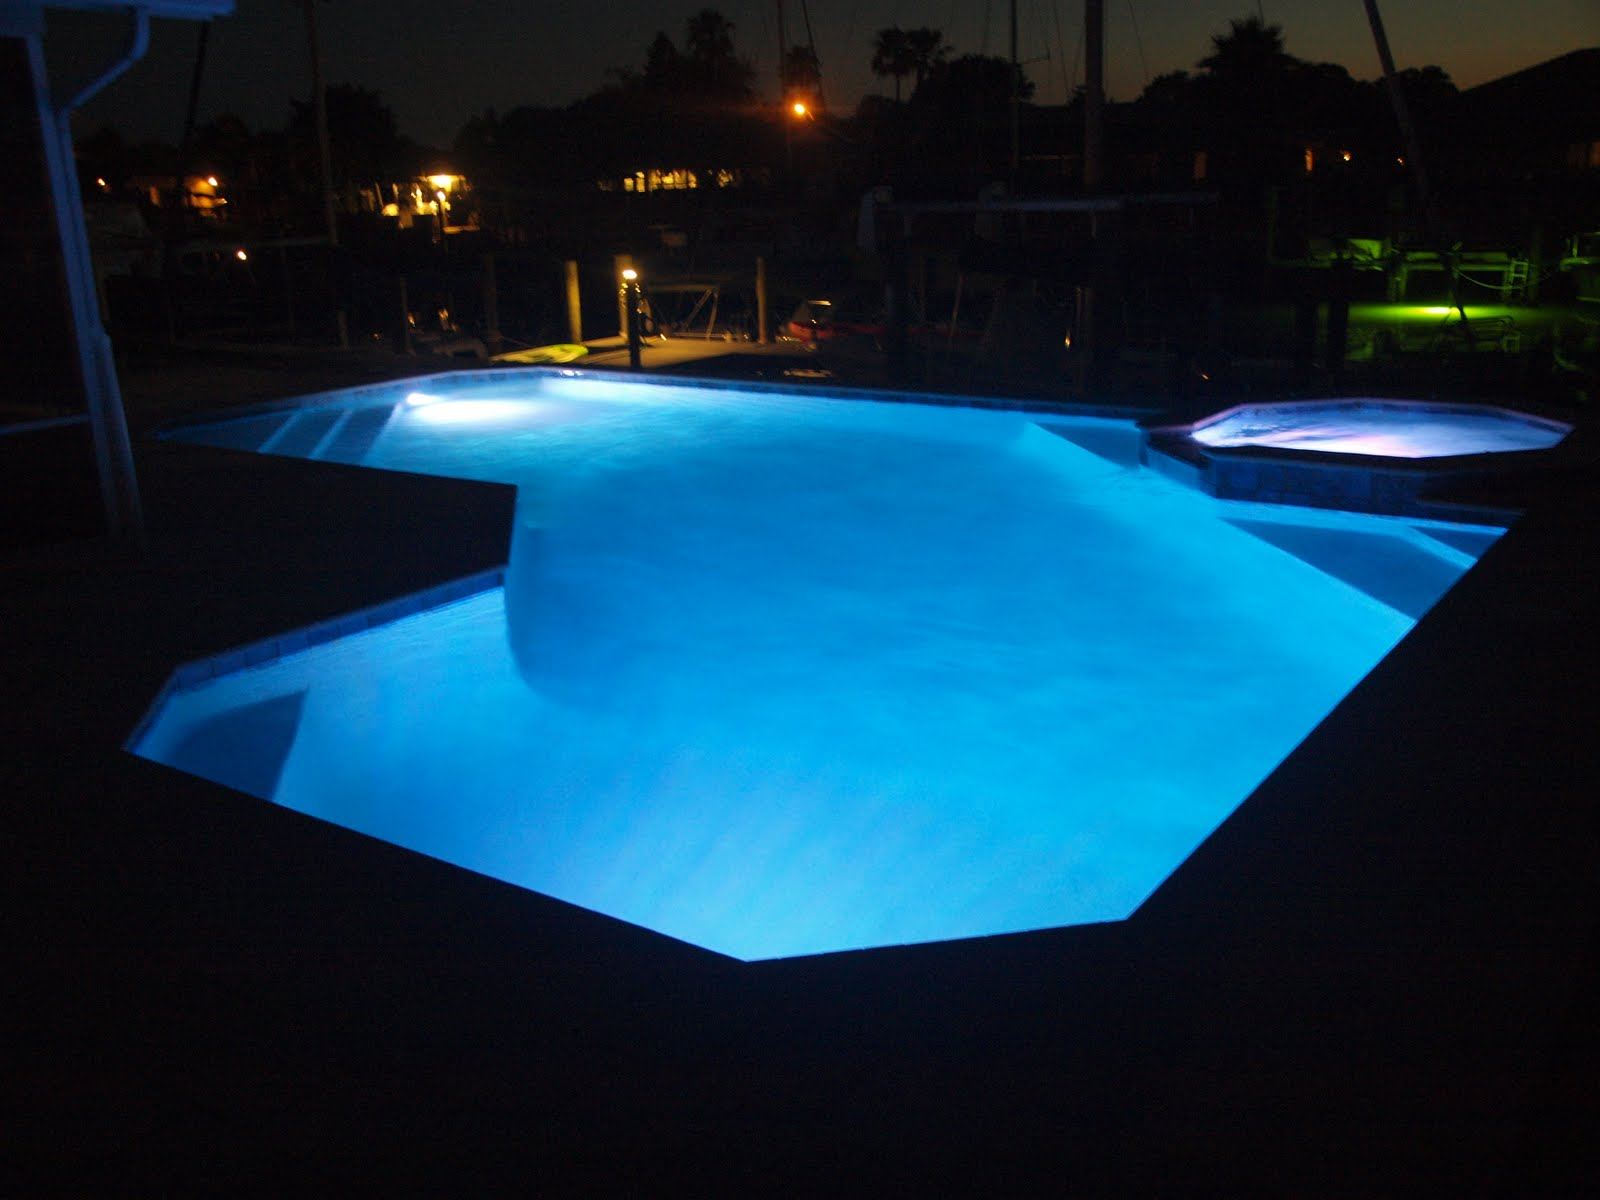 Swimming Pool Fixtures : The new blue pool first swim night lights